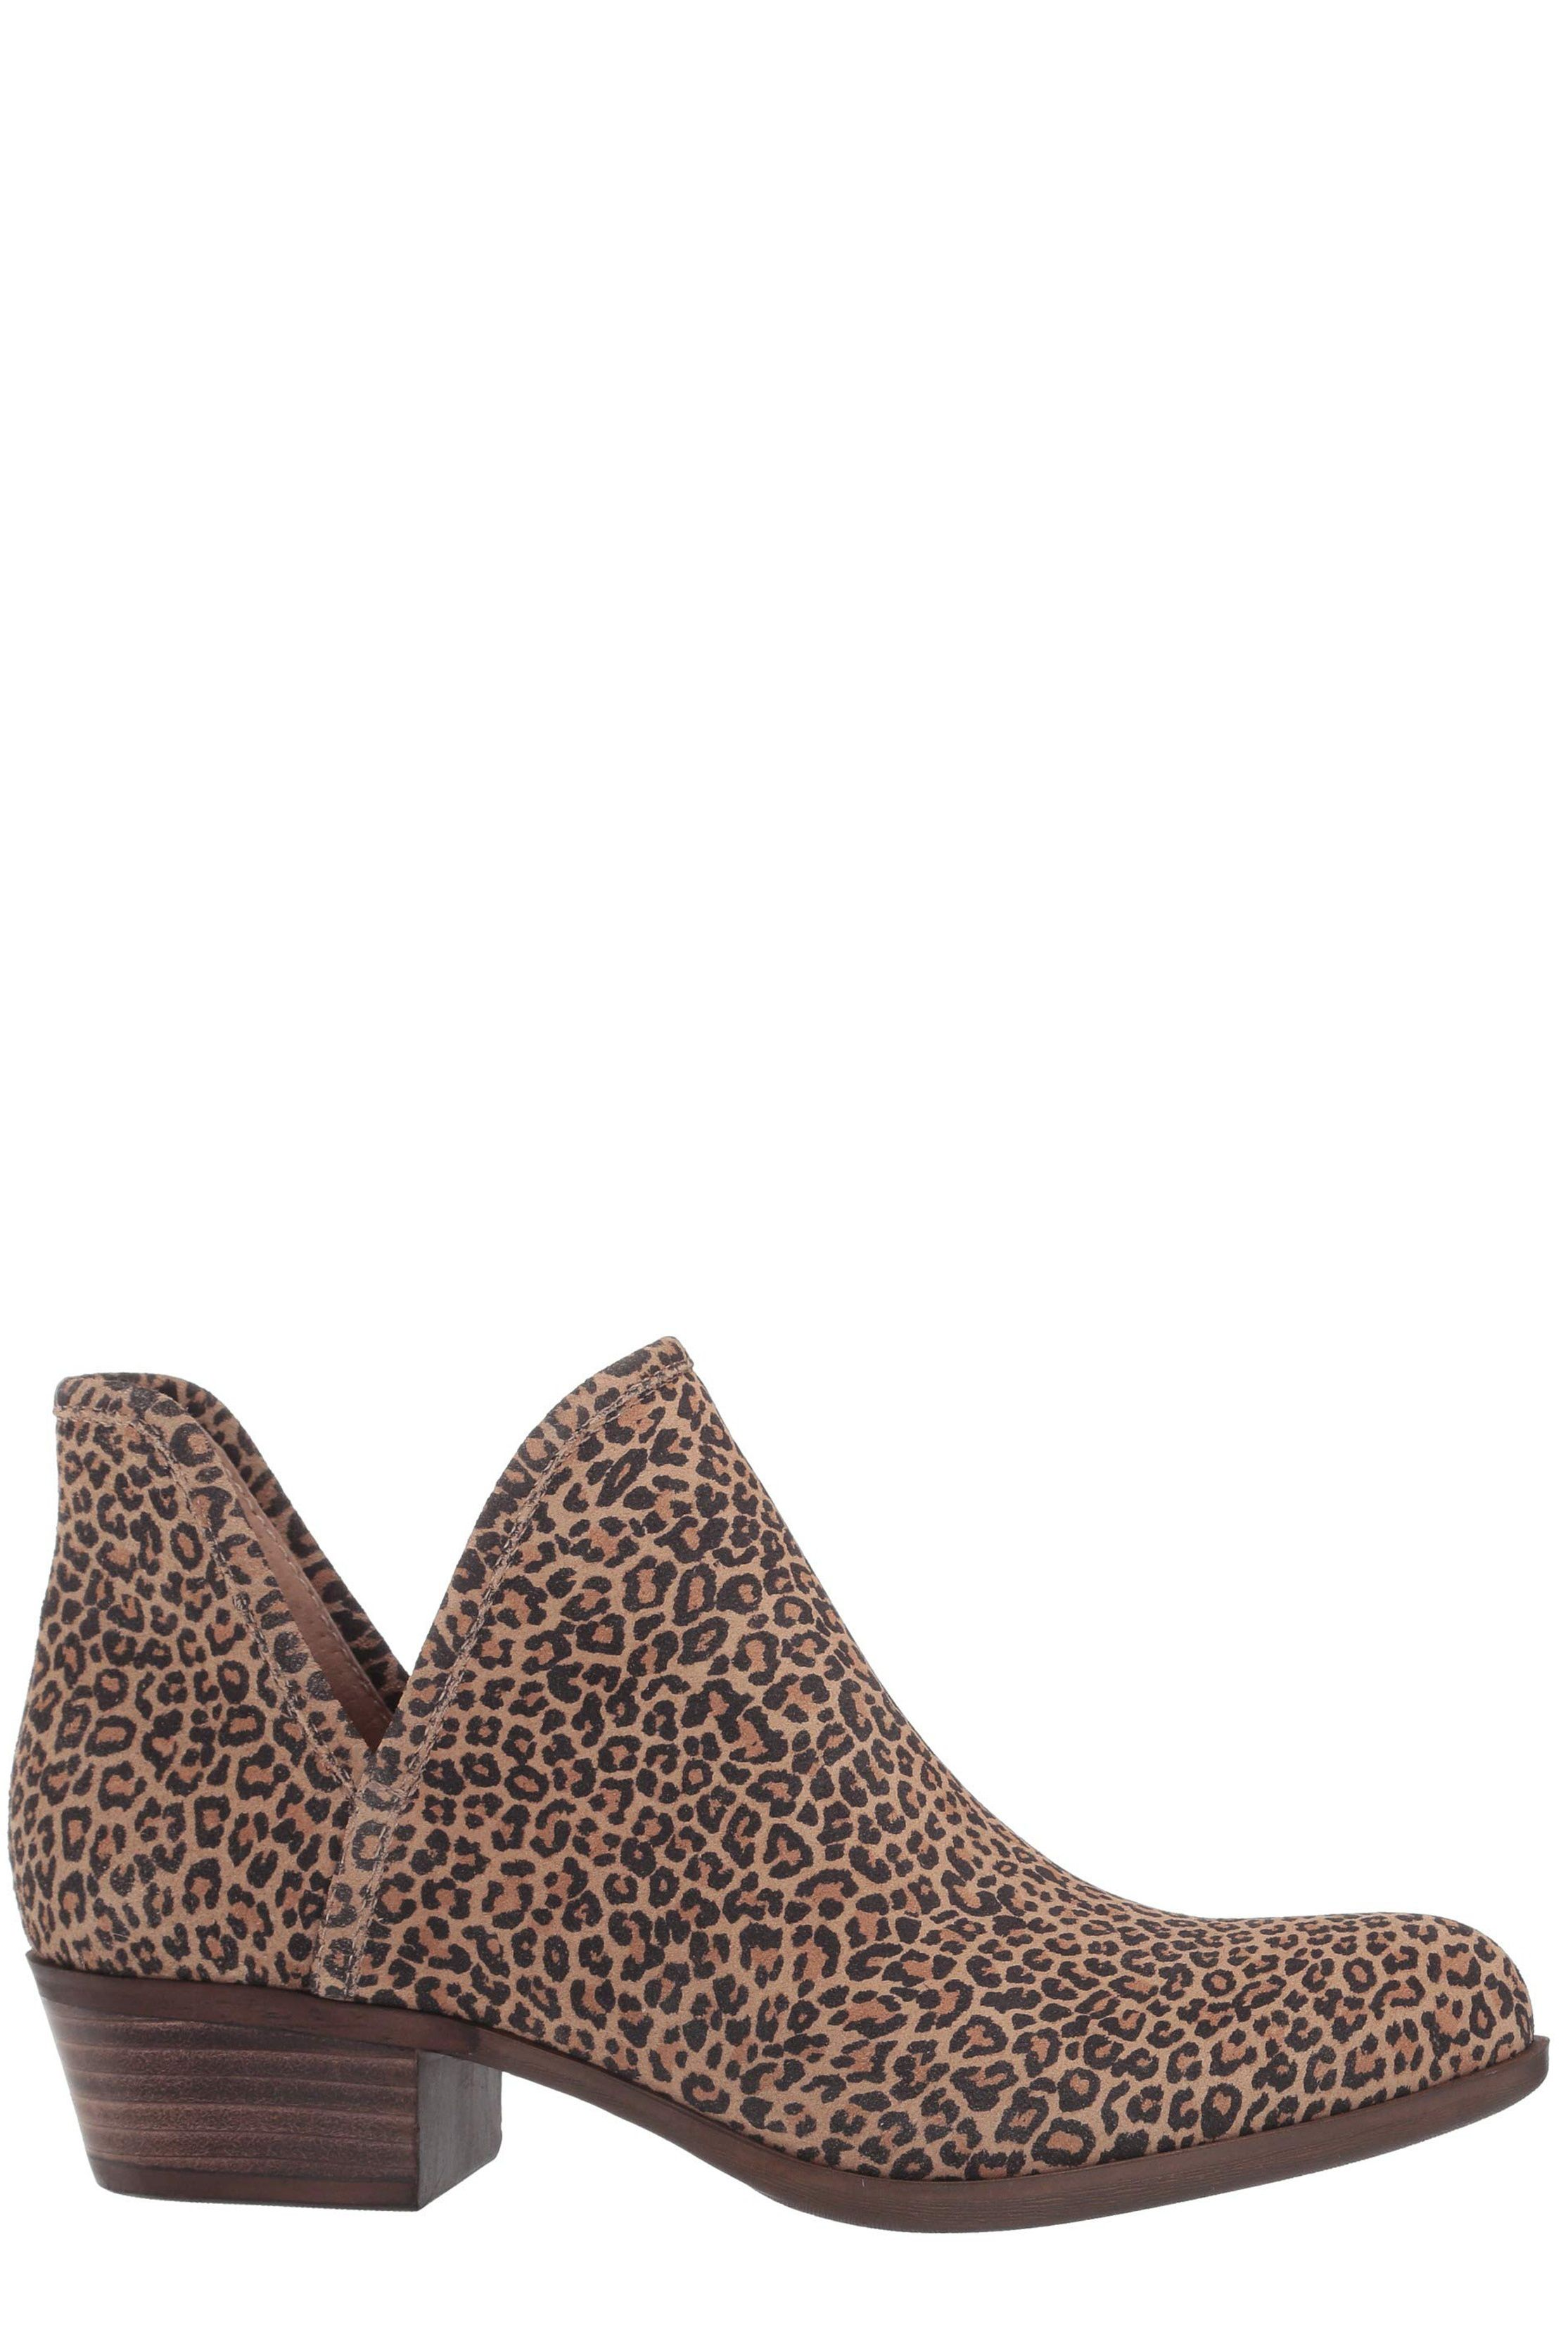 Lucky Brand Baley2 Ankle Boot